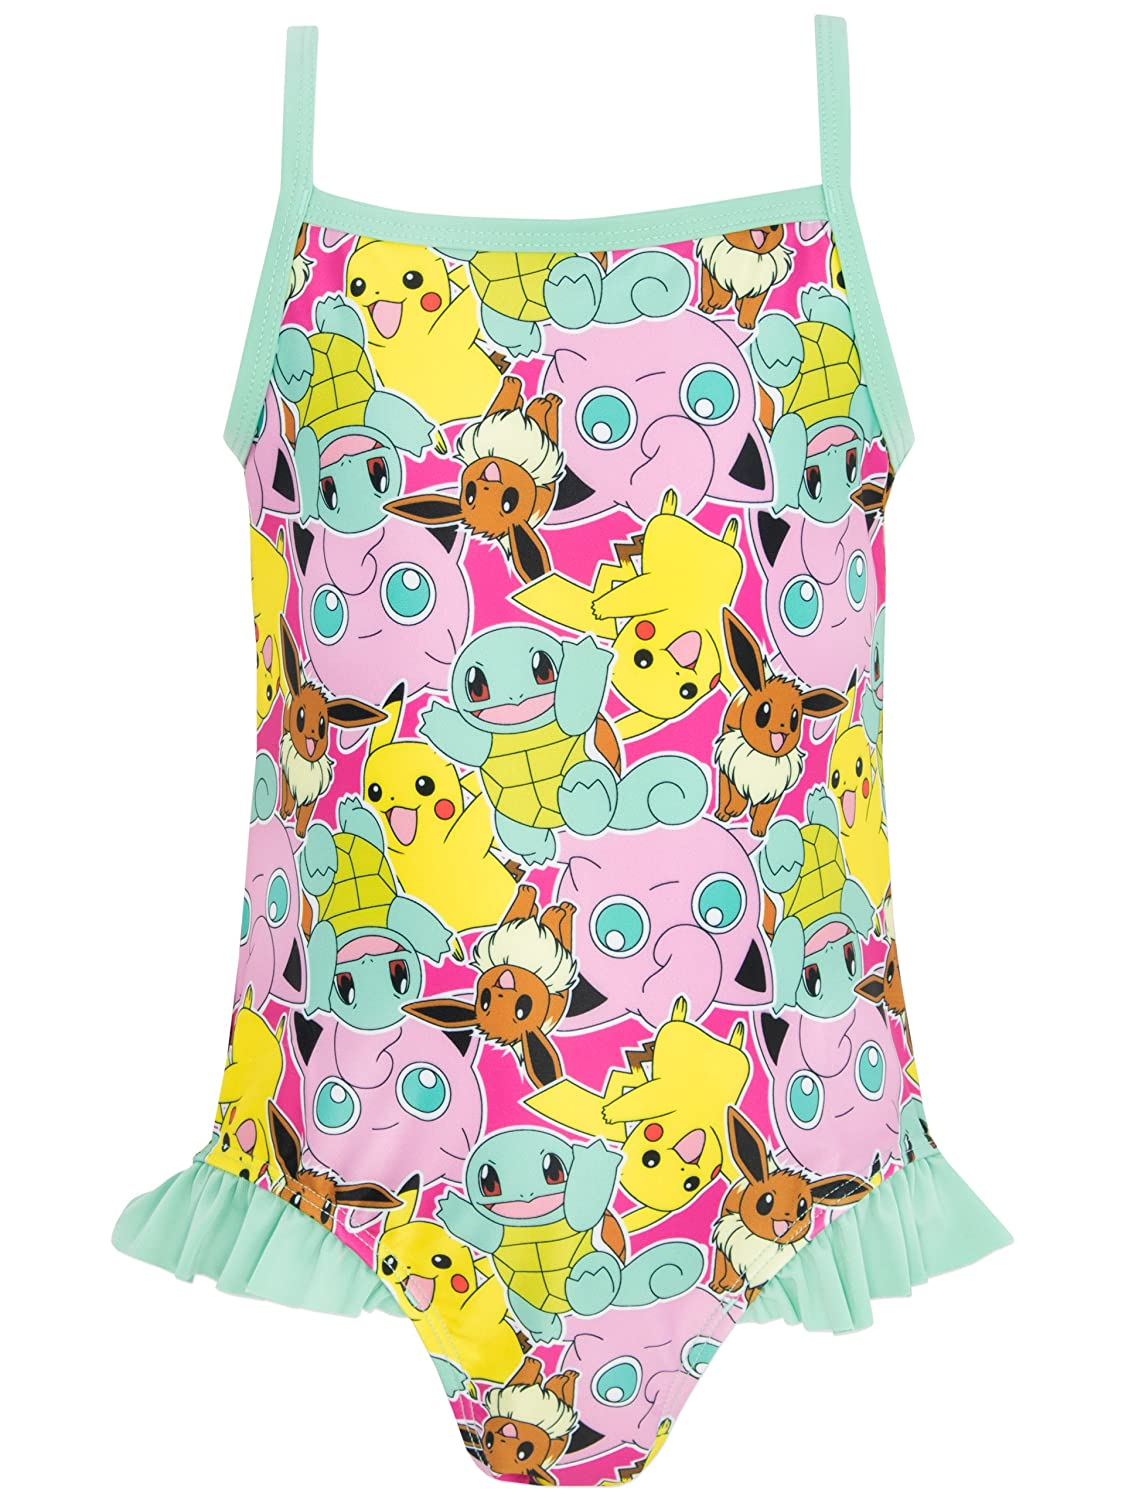 d8a8658b6d090 Pokemon Girls Swimsuit Ages 5 to 12 Years: Amazon.co.uk: Clothing